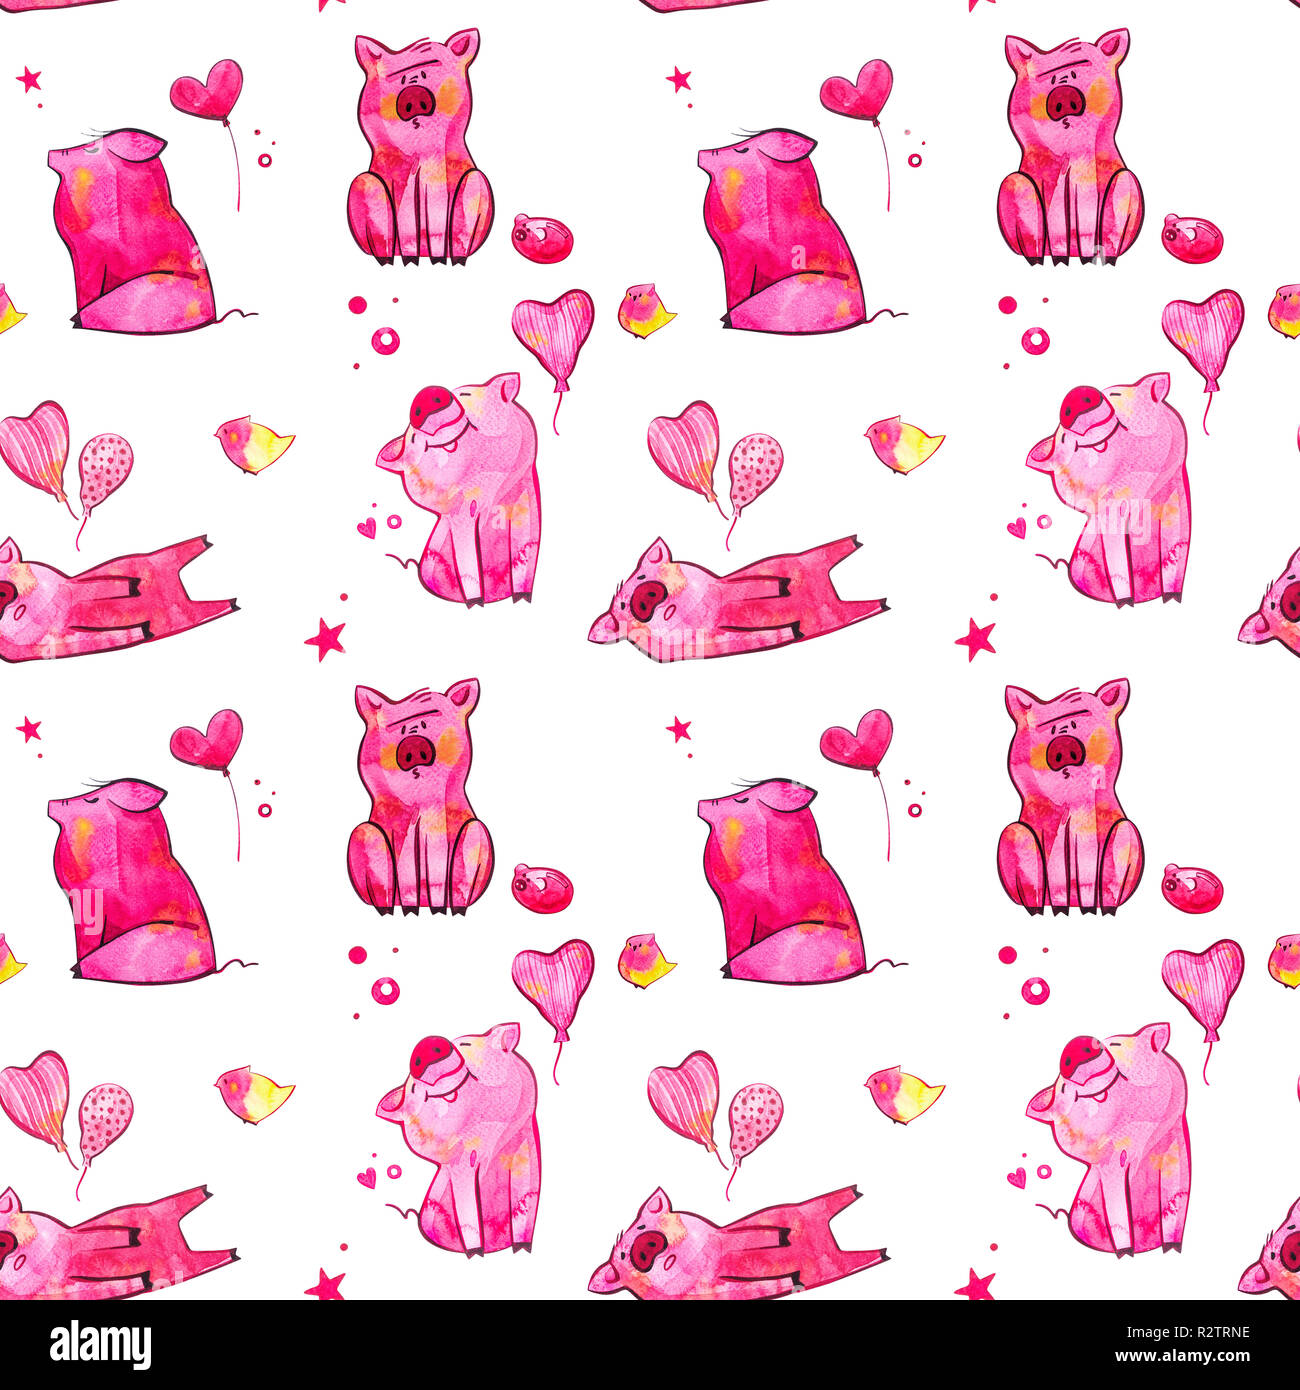 Cute pig seamless pattern  Symbol of the year in the Chinese